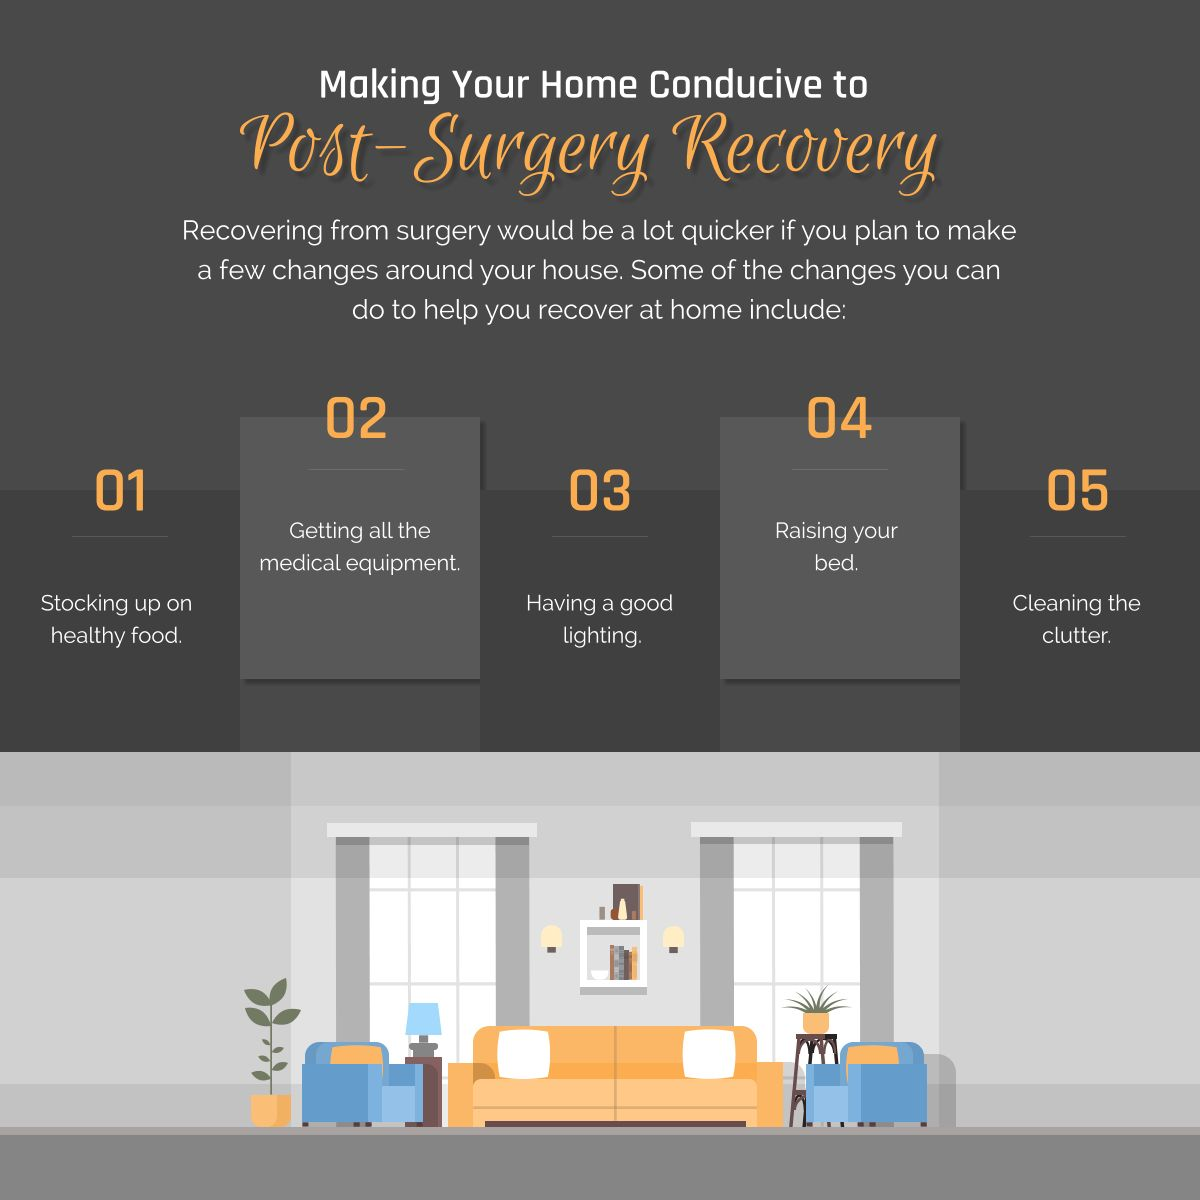 Making Your Home Conducive to PostSurgery Recovery